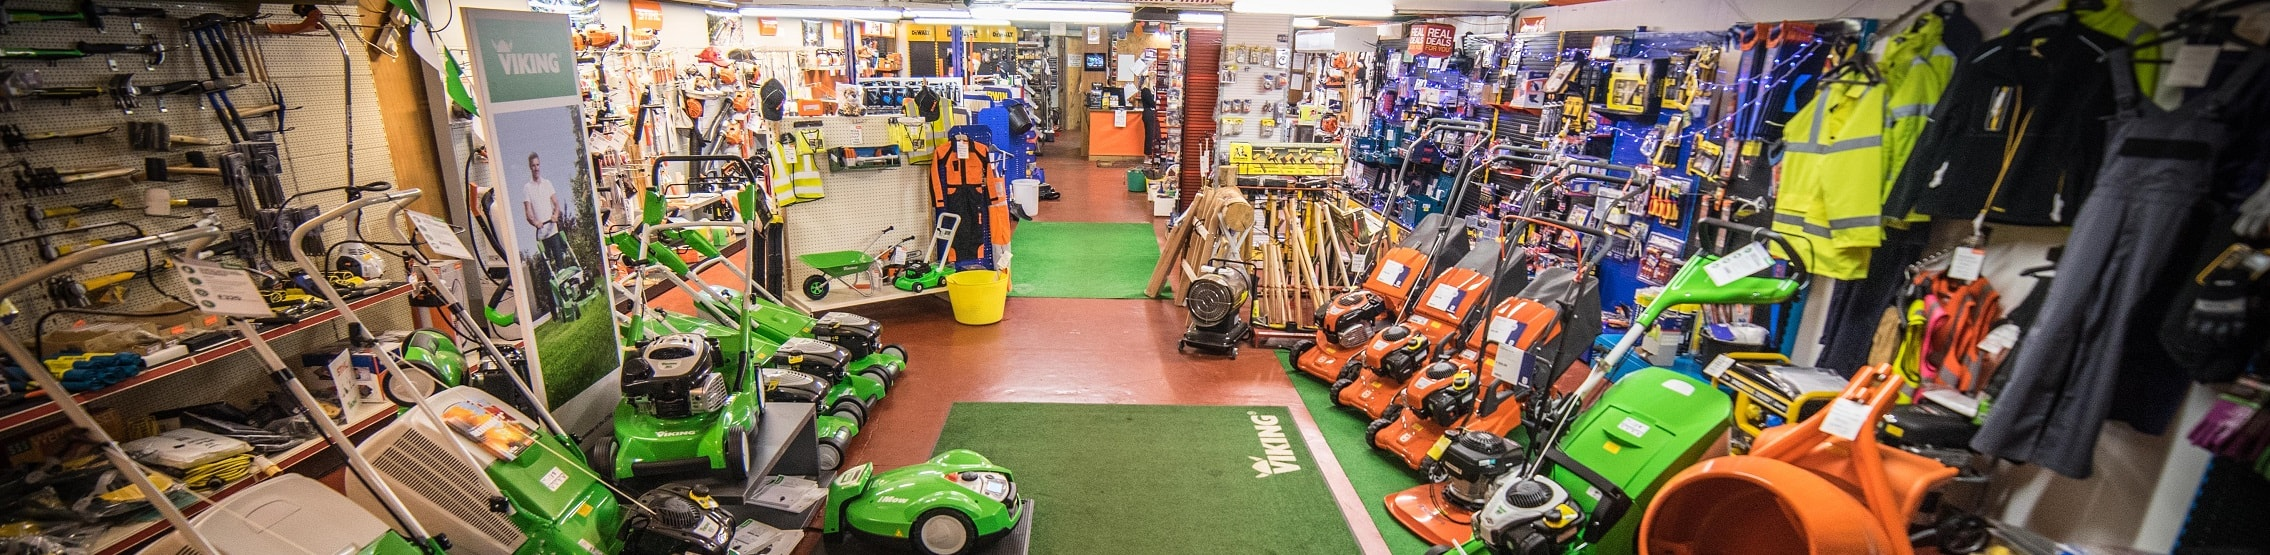 Galloway Hire Tools at Heathhall Business Centre Ltd